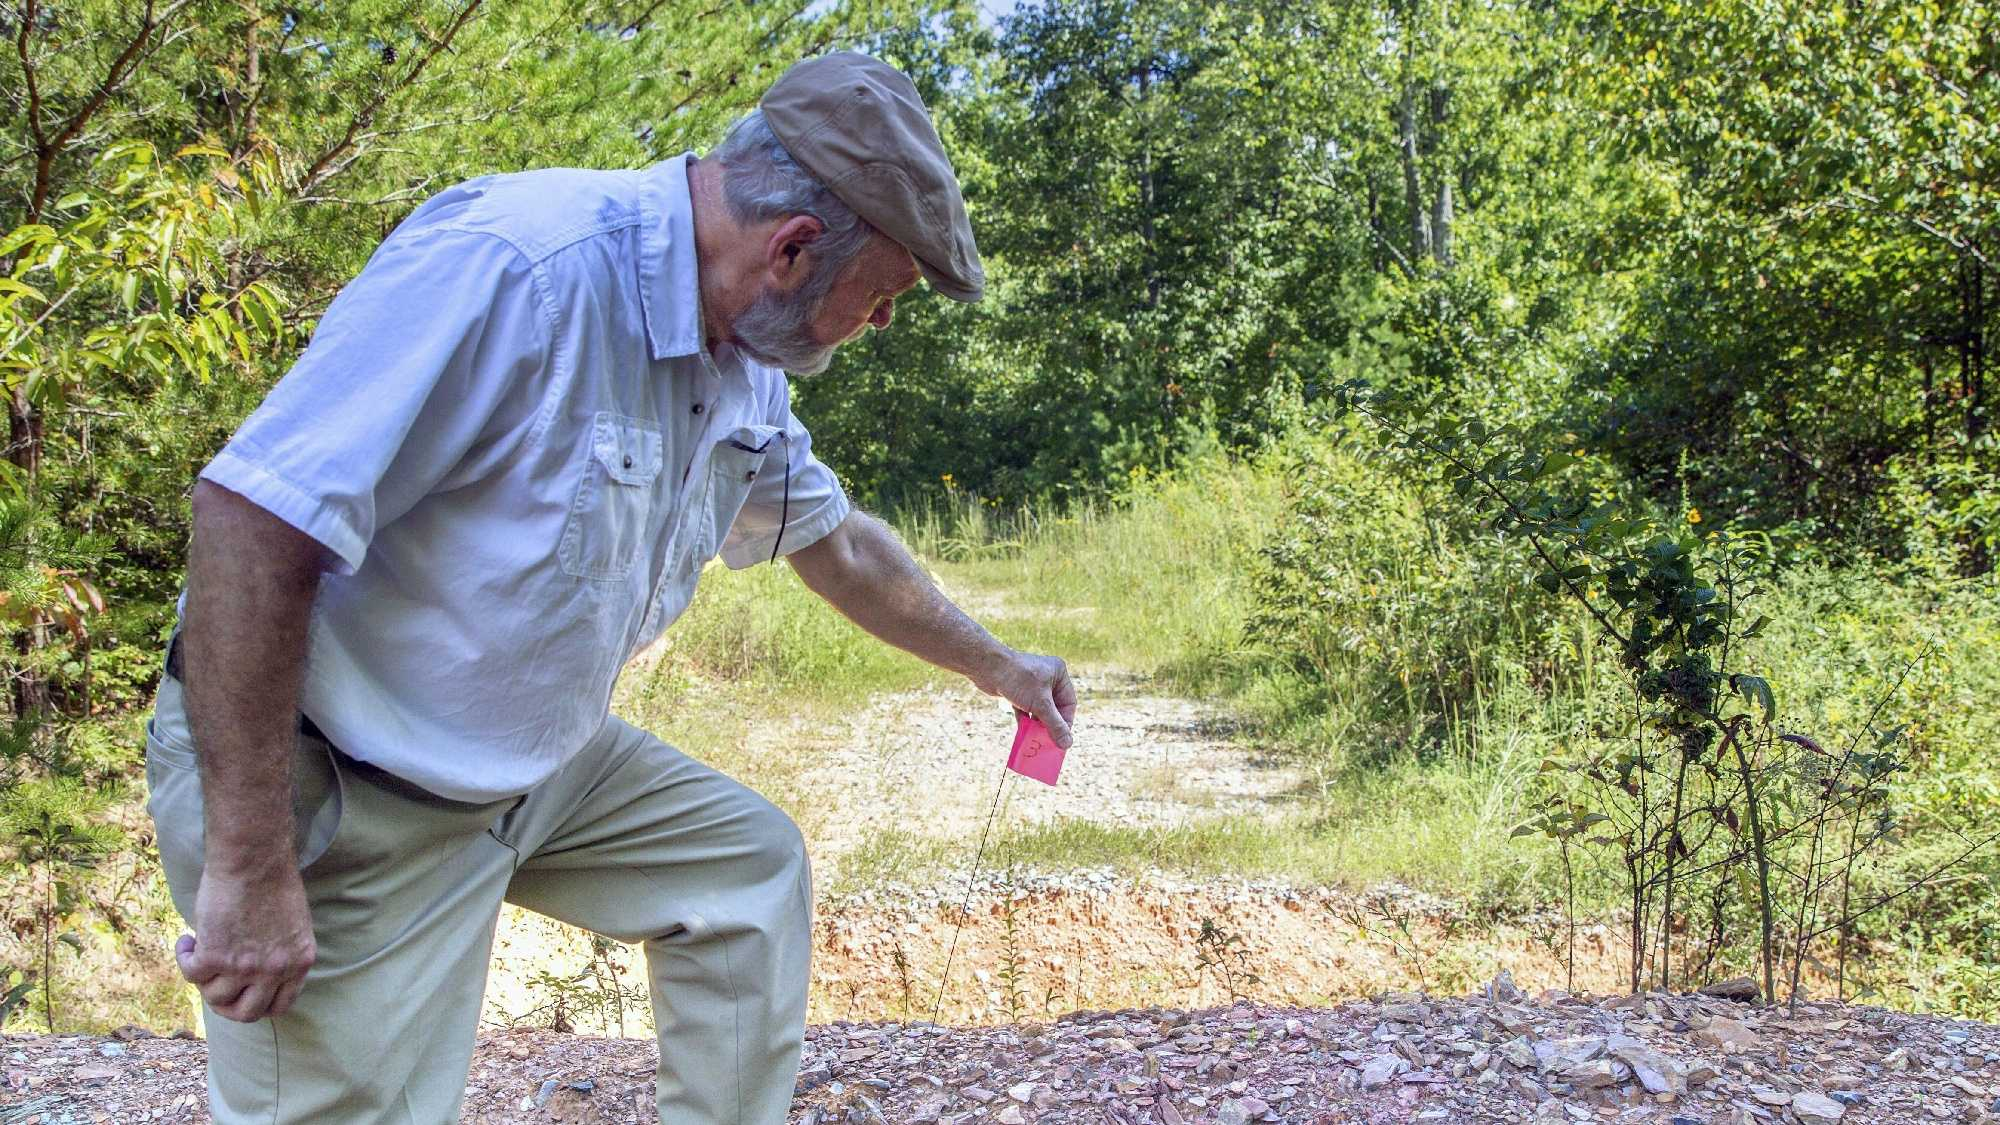 In this Thursday, Sept. 15, 2016, photo, Coker Creek, Tenn., resident and historical preservationist Marvin Harper observes damage to a section of the Trail of Tears in the Appalachian Mountains. The flag indicates a spot where the U.S. Forest Service used heavy equipment to make trenches and berms in what agency officials now say was in violation of federal laws, The U.S. Forest Service is apologizing after it ripped up a portion of the Trail of Tears in the Appalachian Mountains. The damage has reopened wounds for Native Americans who consider the land sacred. (AP Photo/Erik Schelzig)